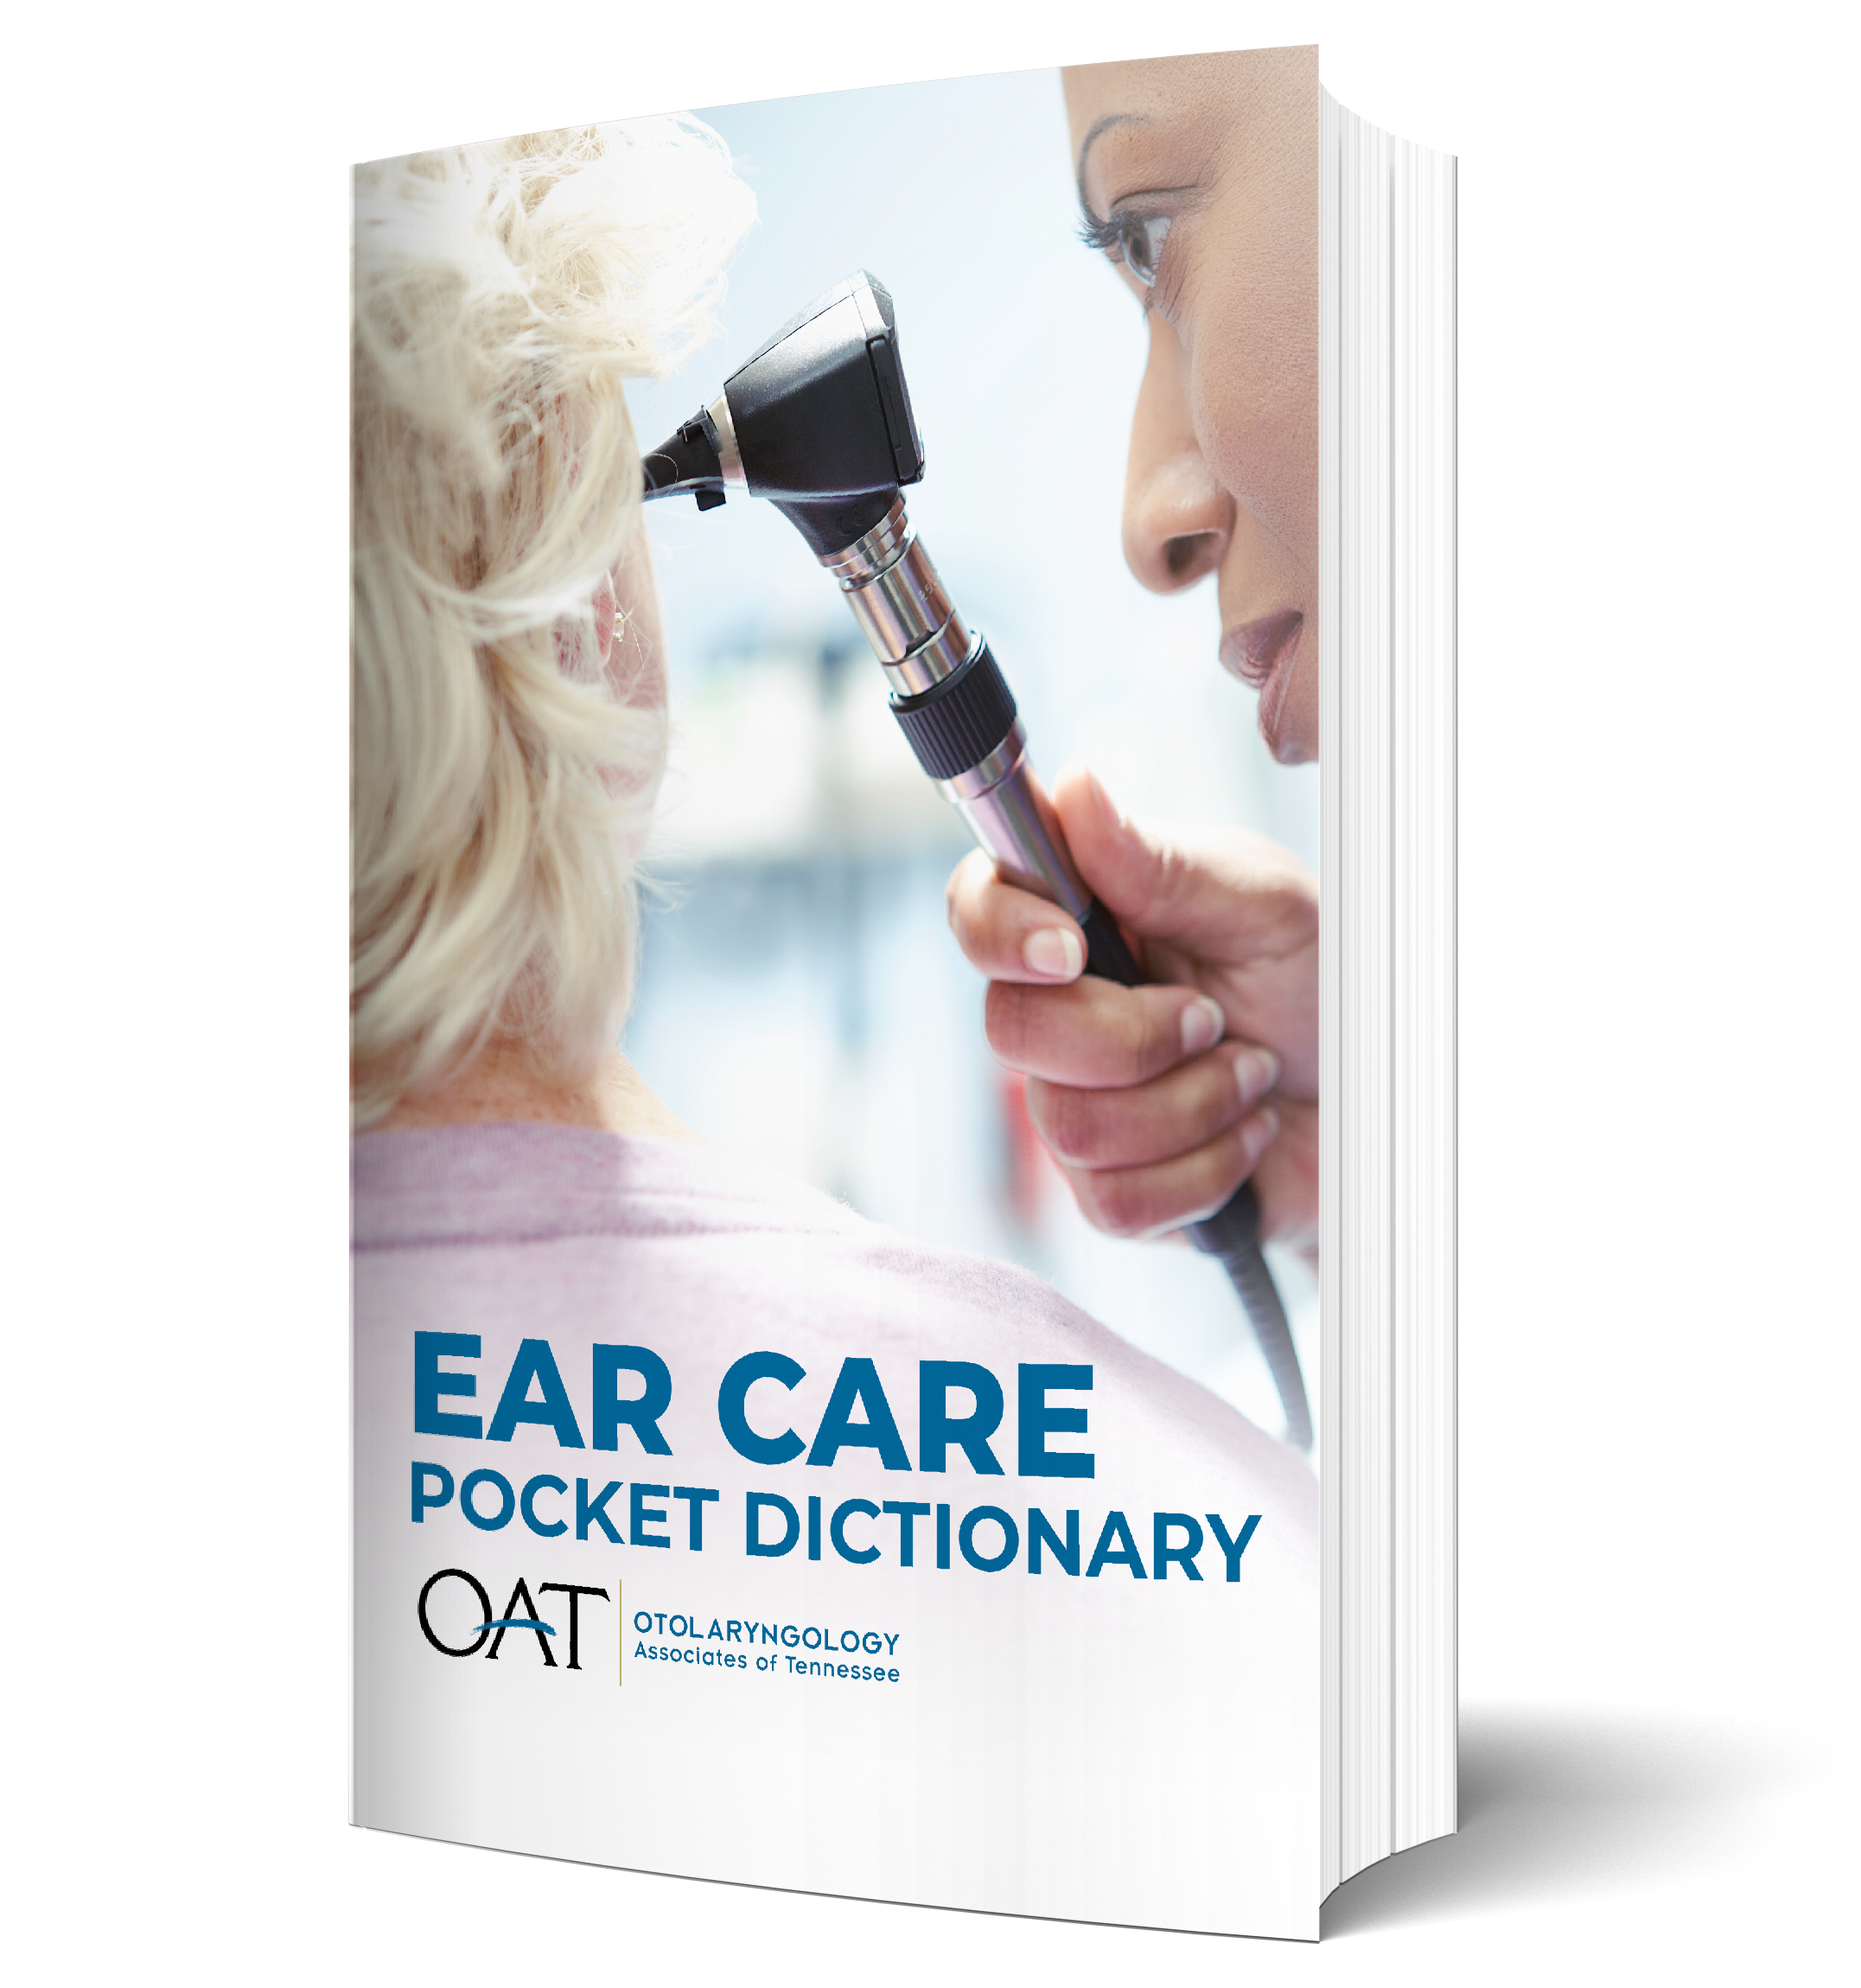 Ear-Care-Pocket-Dictionary-Mockup-Cover-2.png